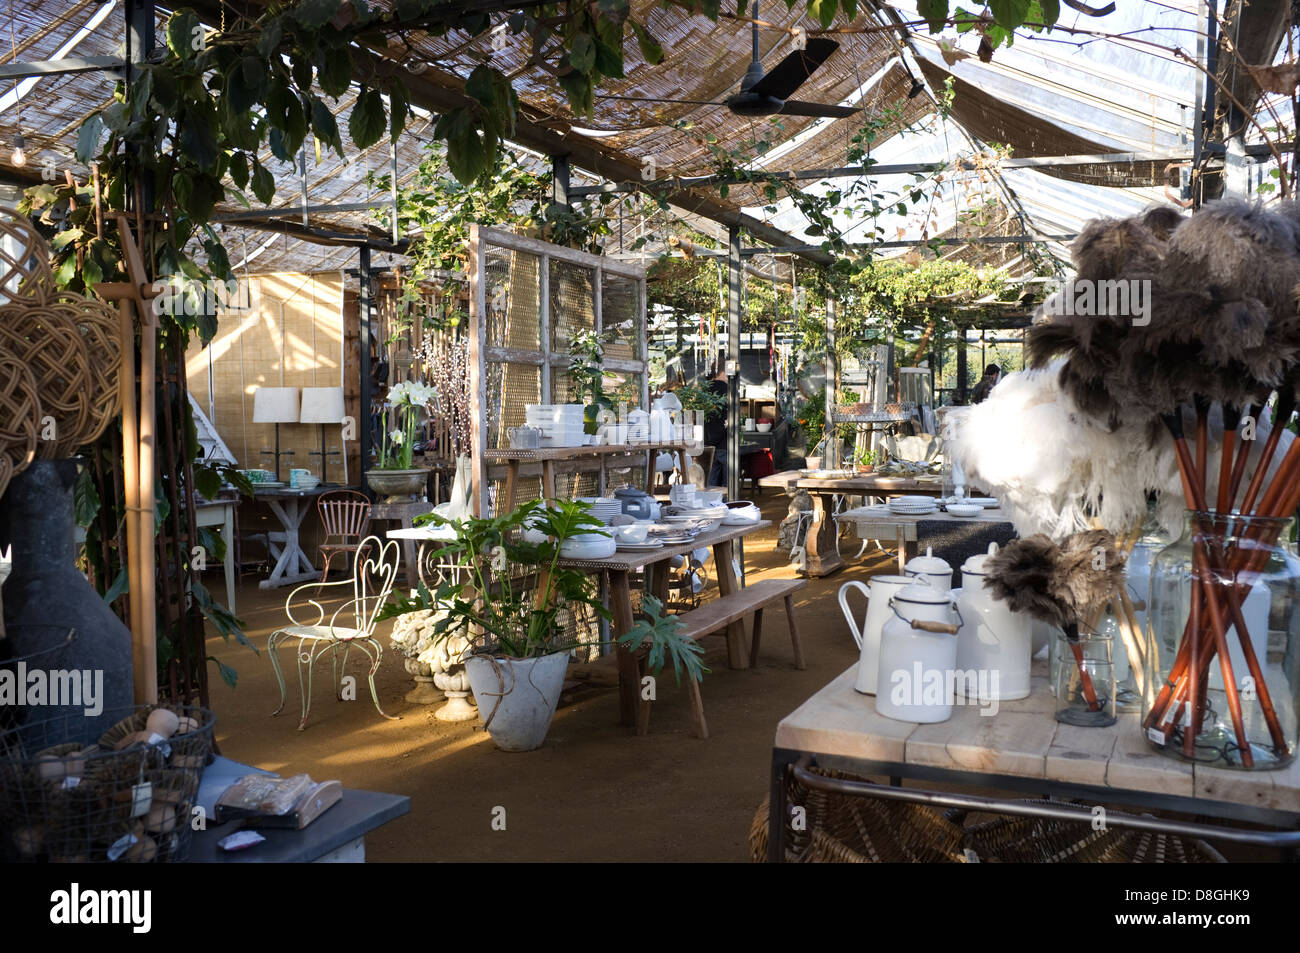 Petersham nurseries a plant nursery tearoom and cafe in for British house store